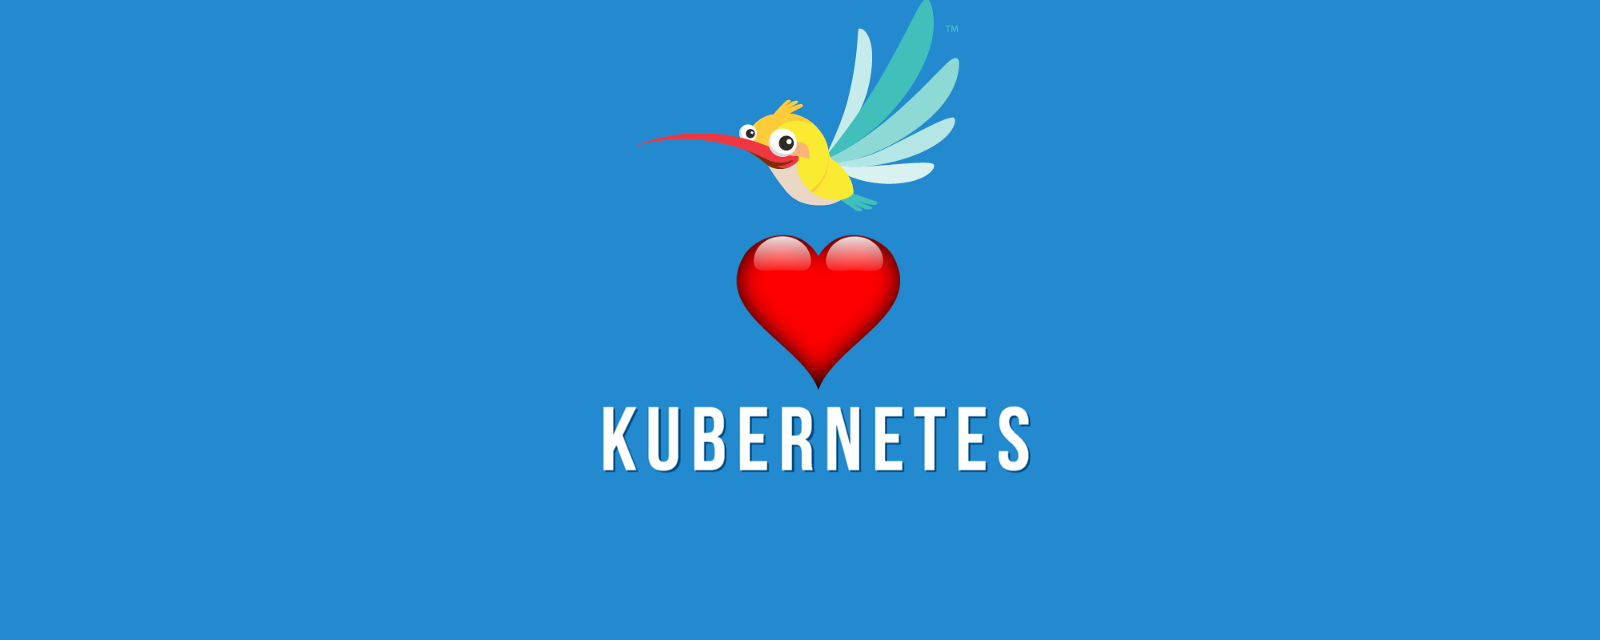 /deploying-flogo-apps-to-kubernetes-43a74742e323 feature image